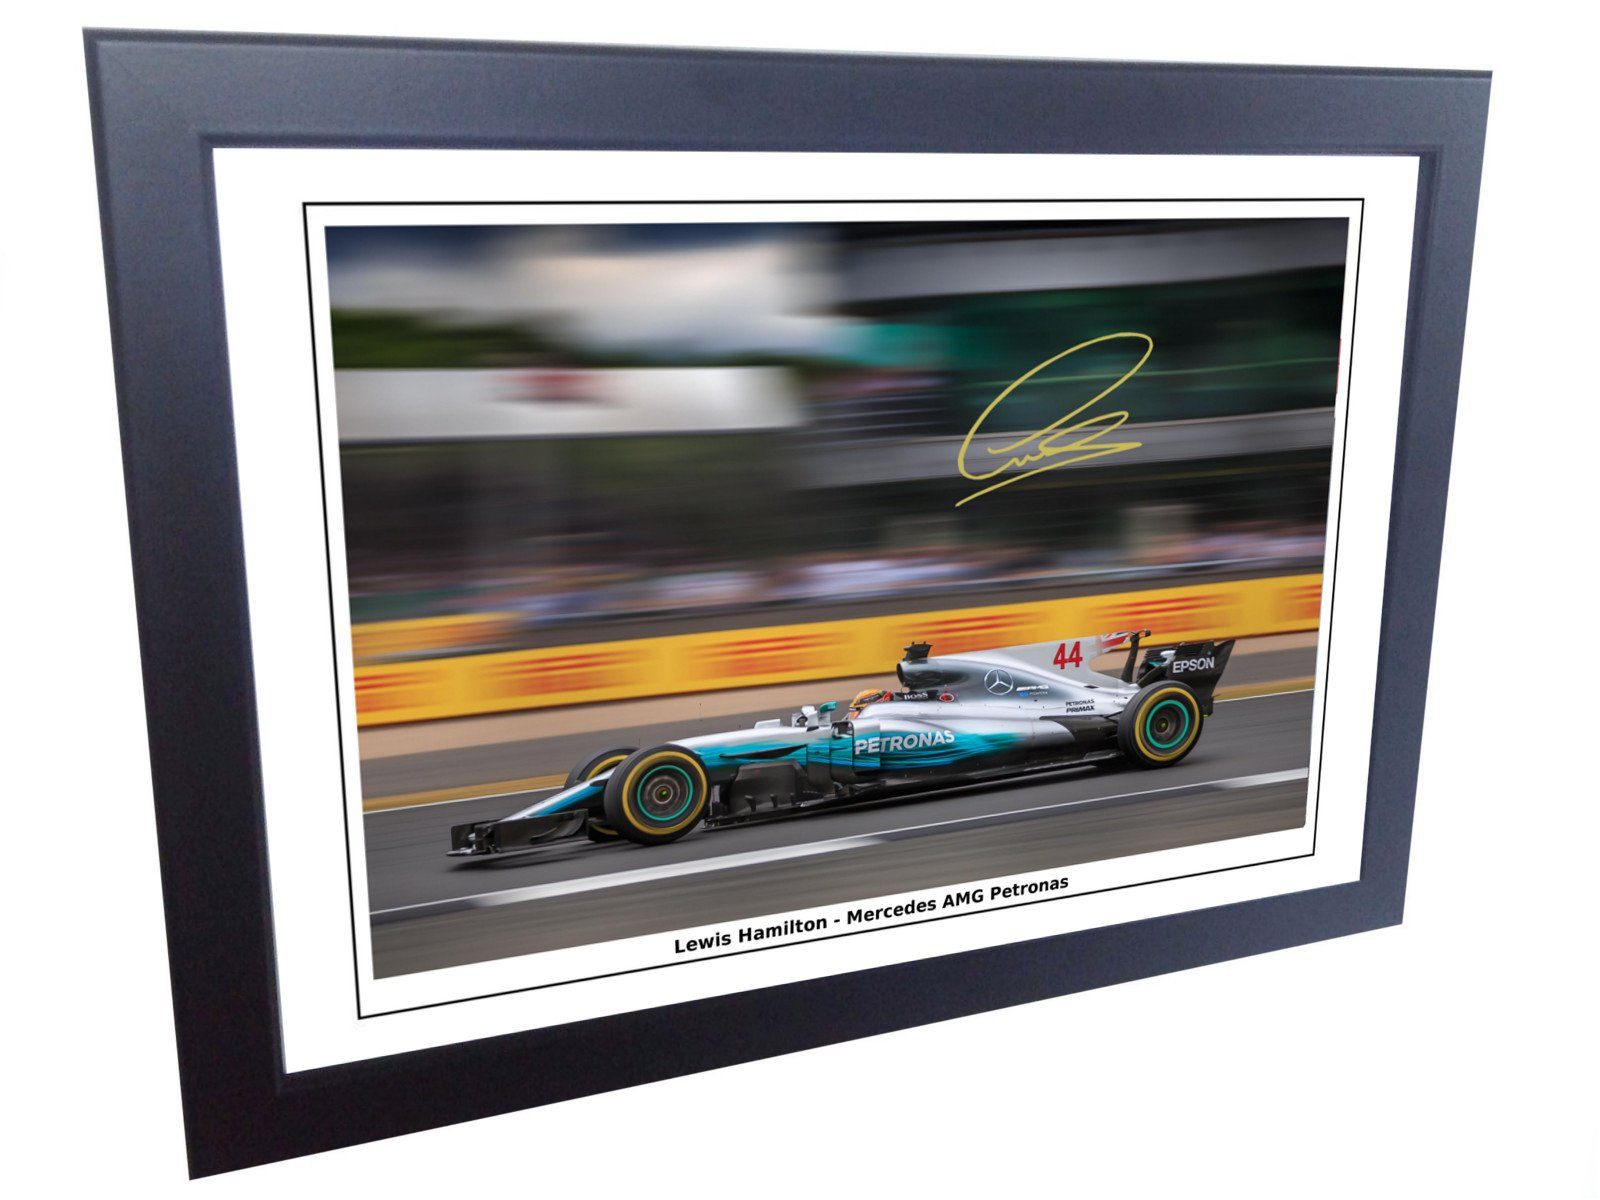 12x8 A4 Signed Lewis Hamilton 2017/18 Mercedes-AMG Petronas Autographed Photo Photograph Picture Frame Motor Sport Formula 1 F1 Gift